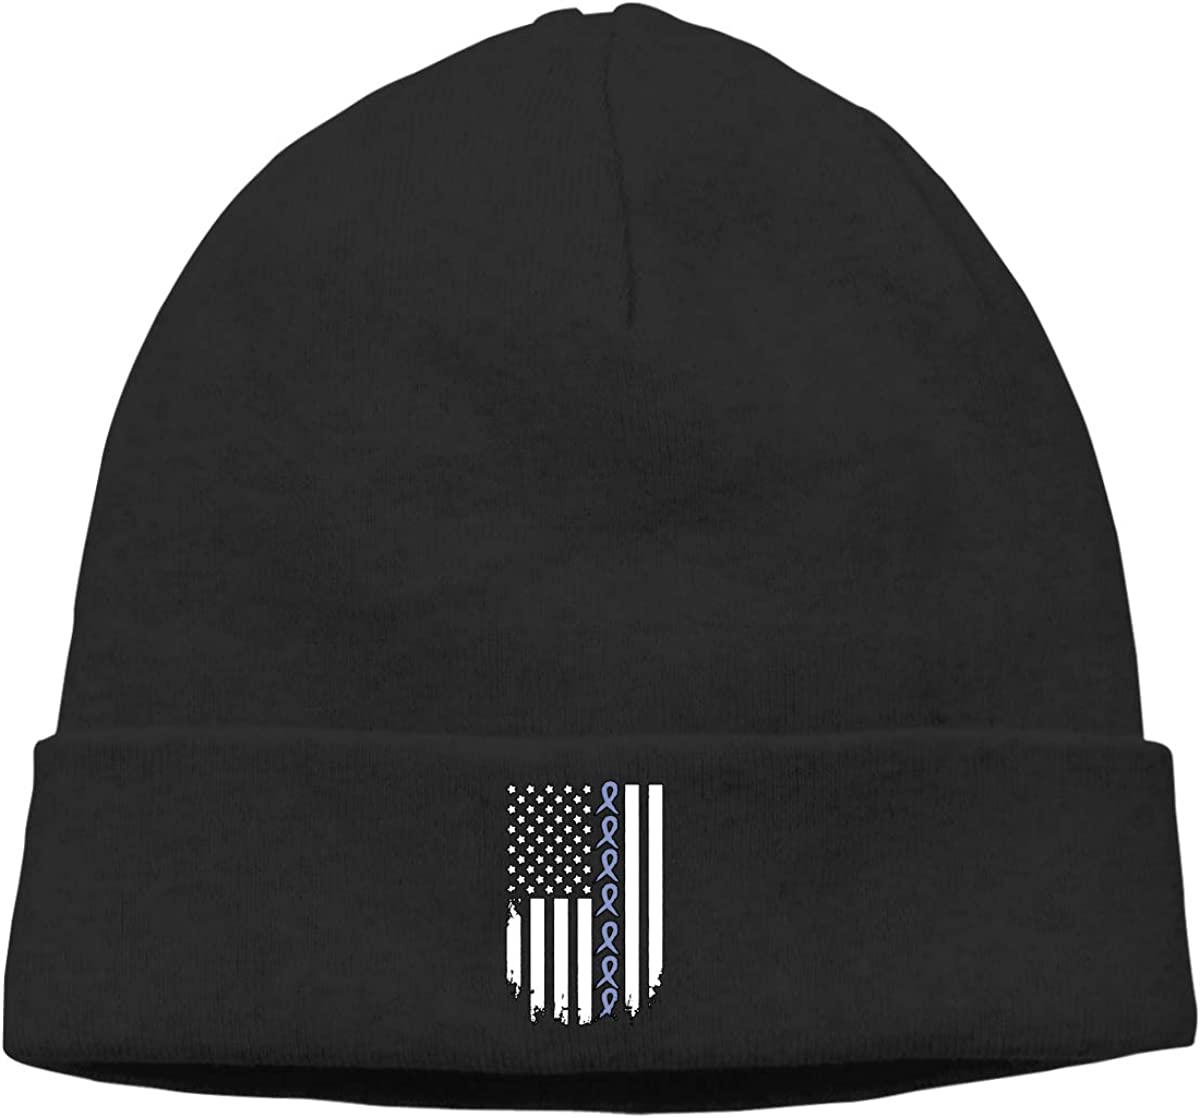 Thin Esophageal Cance American Flag Men Womens Solid Color Beanie Hat Stretchy /& Soft Winter Cap